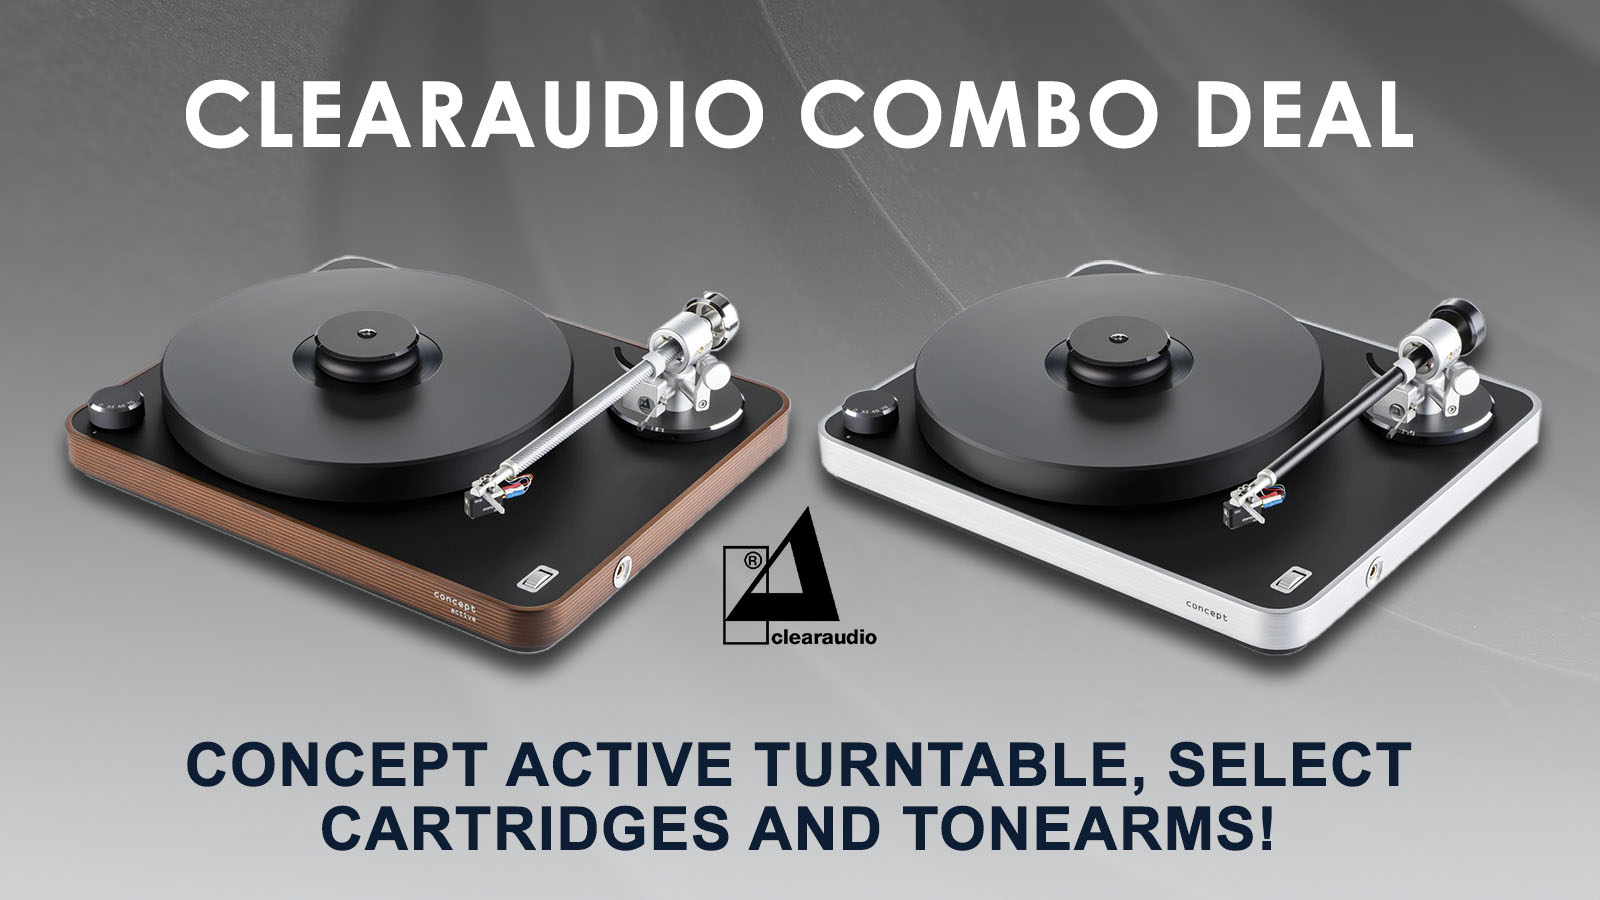 Clearaudio Combo Deal: Shop Concept Active Turntables with Select Cartridges and Tonearms!